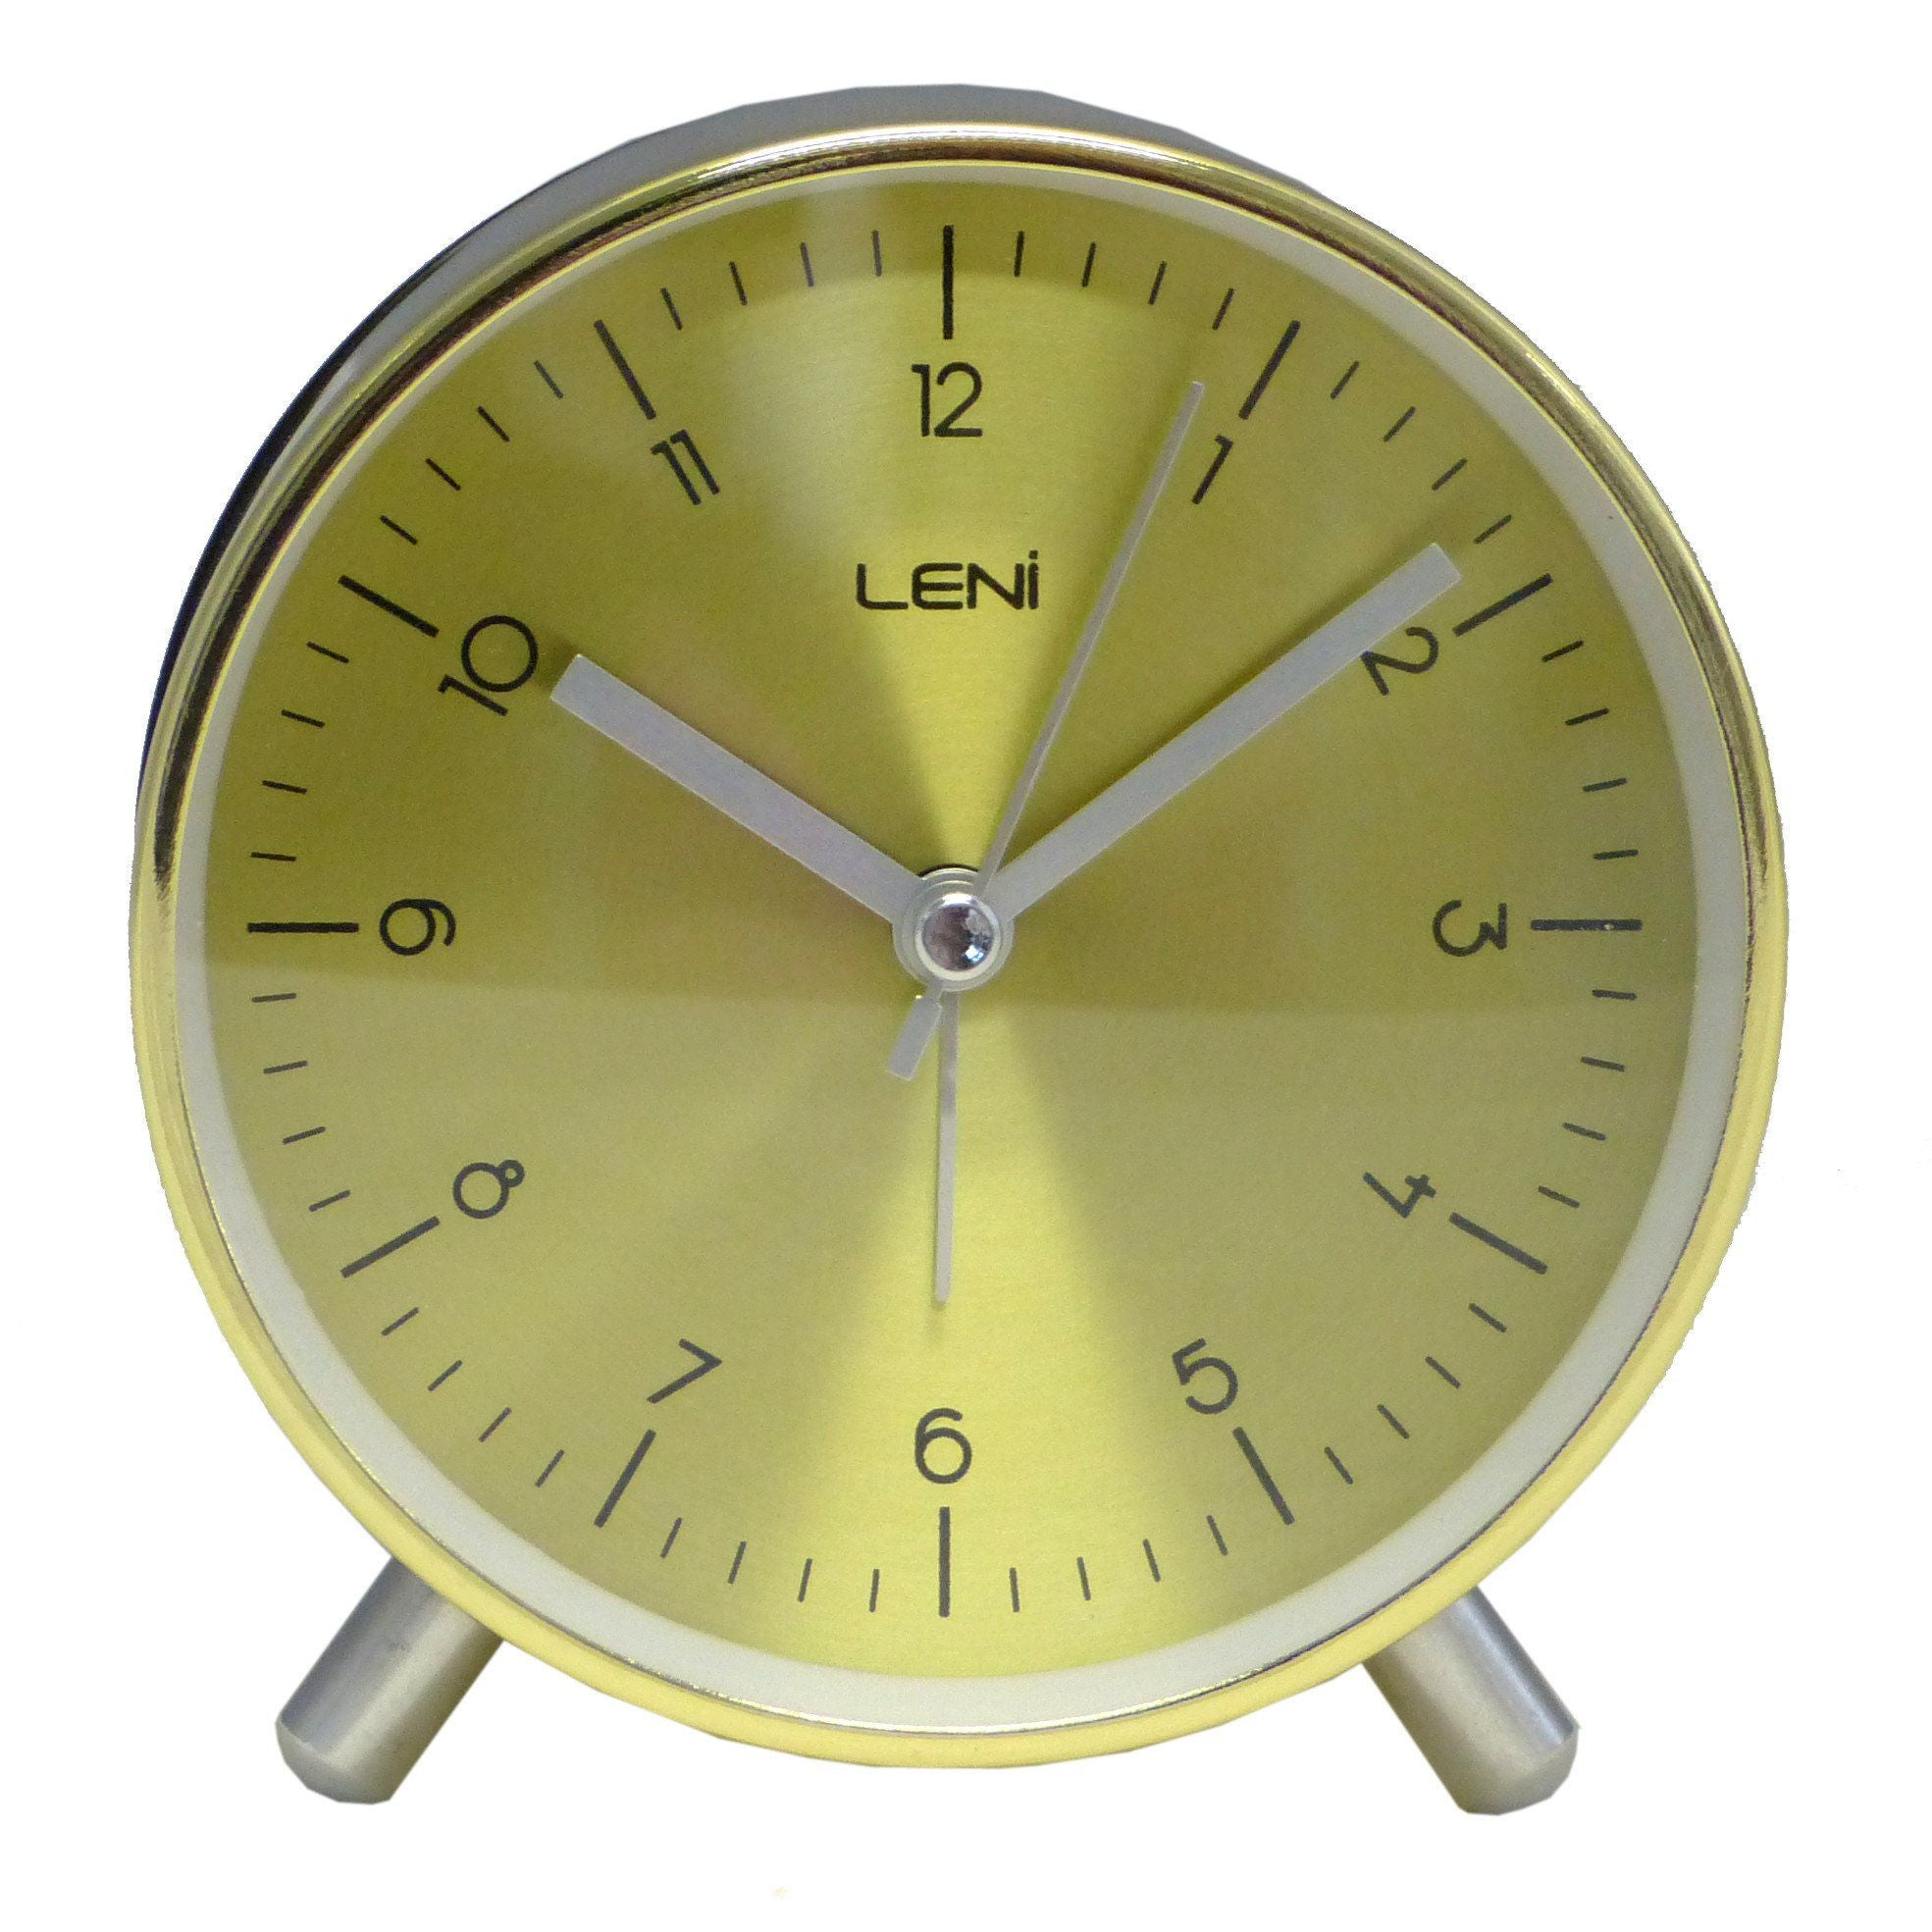 Leni Table Alarm Clock Gold Front 11cm